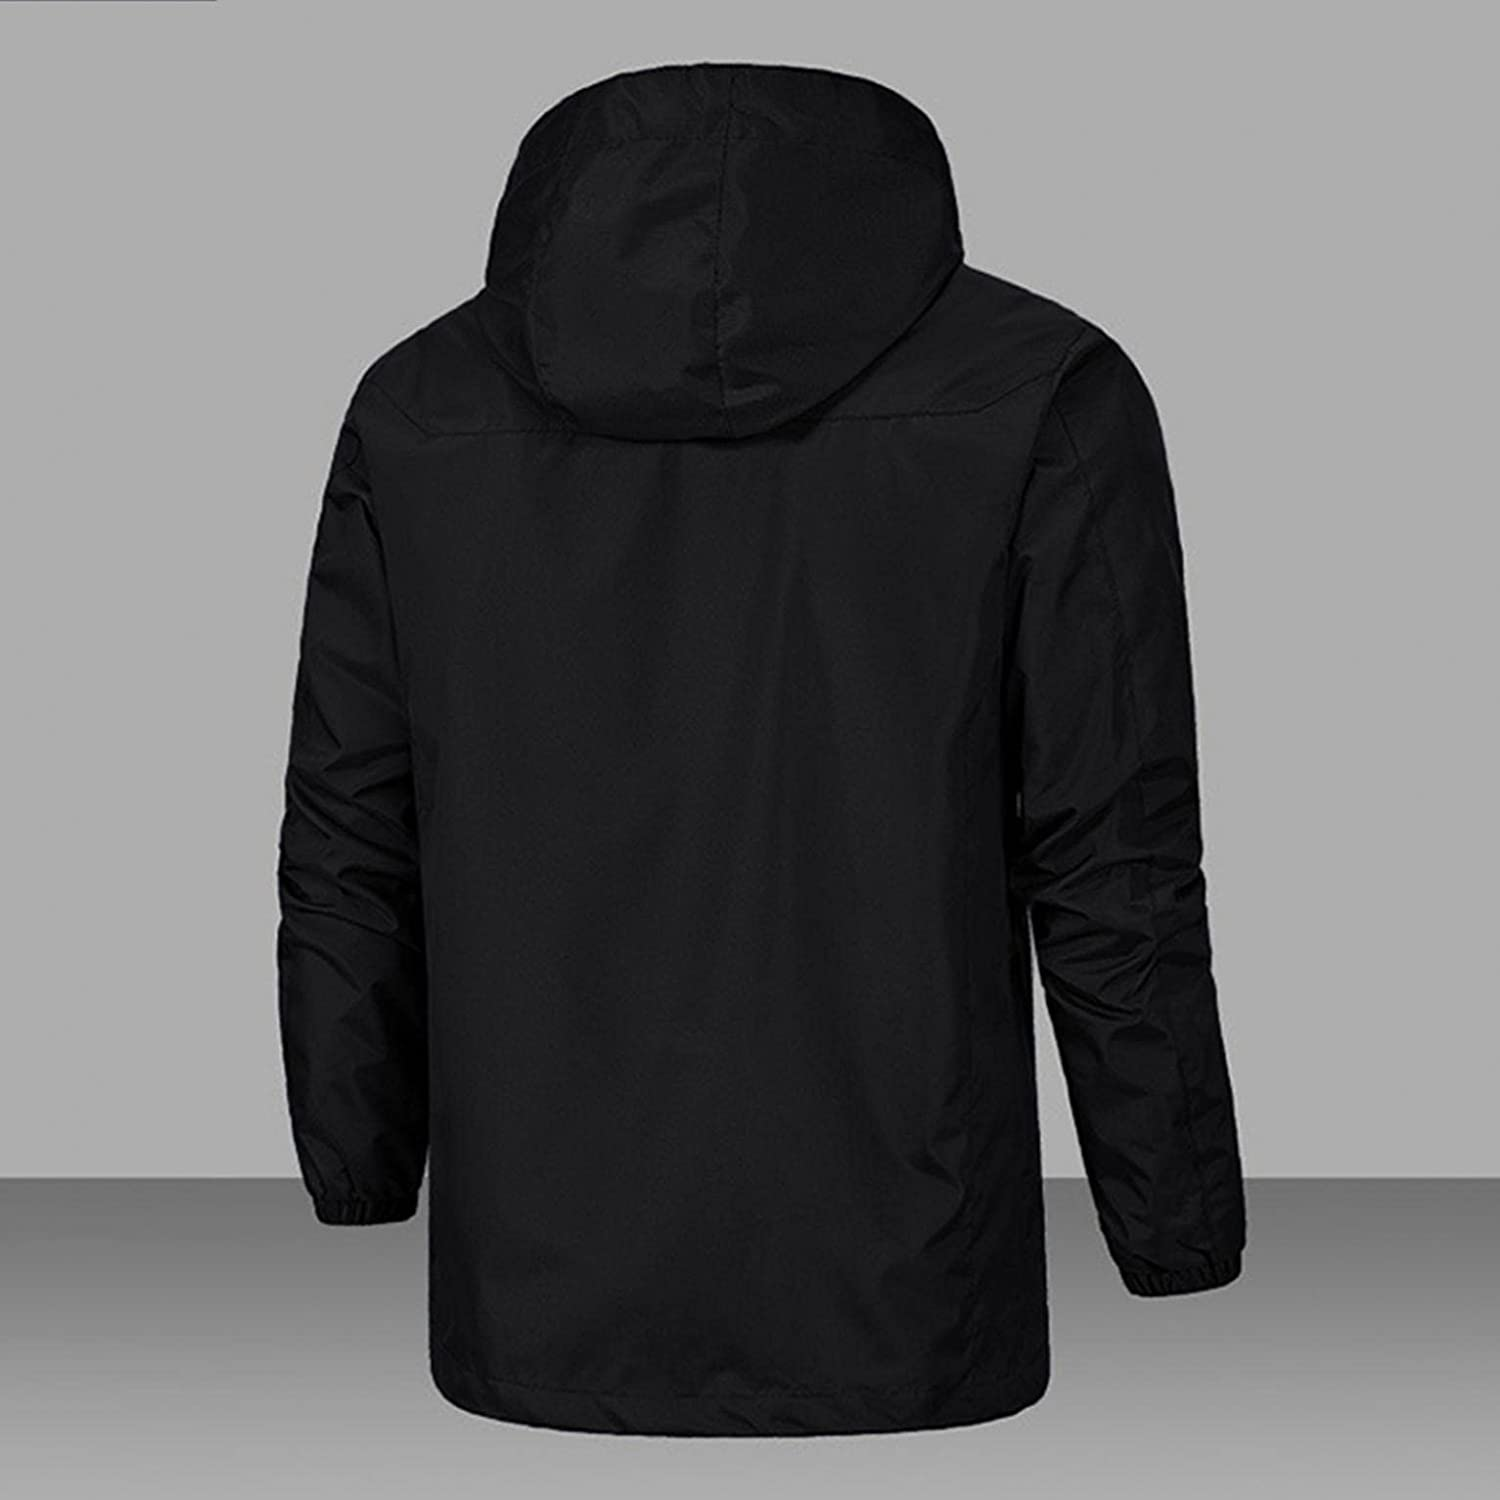 LEIYAN Mens Cargo Military Hooded Jackets Zip Up Long Sleeve Heavyweight Windproof Thick Warm Coat Bomber Outerwear